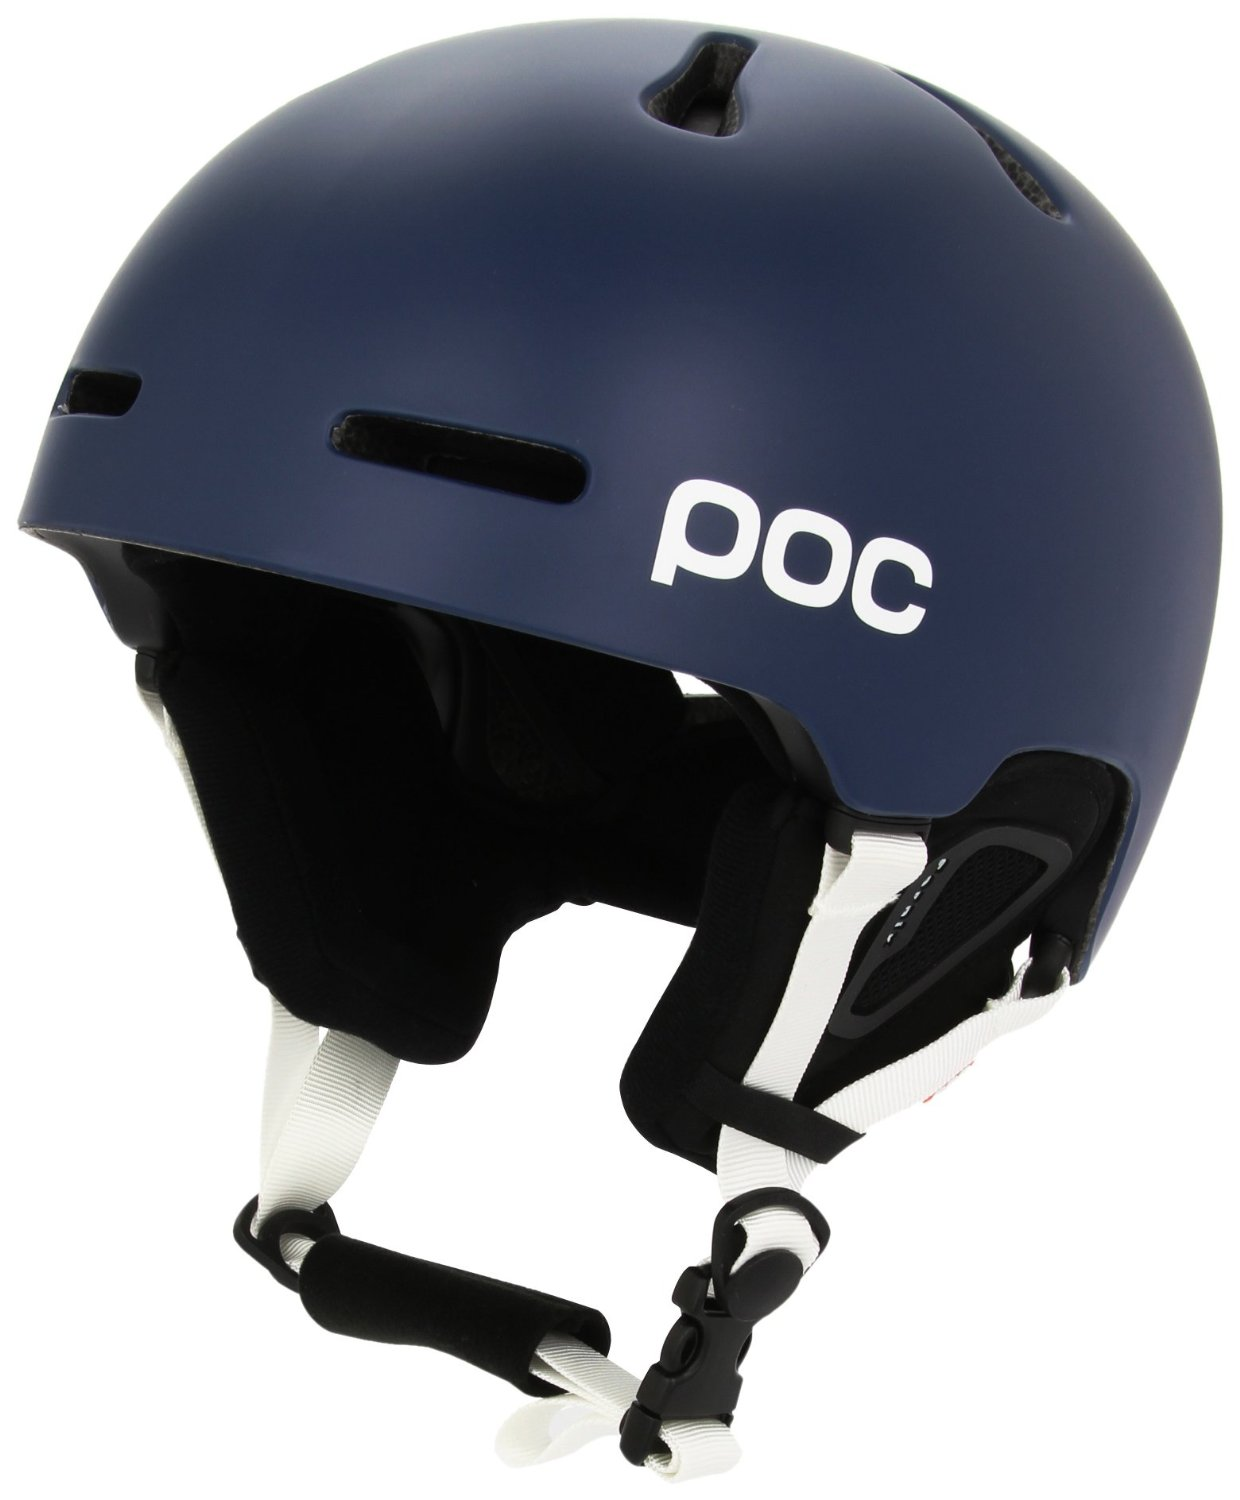 Sizes of POC Bicycle Helmets